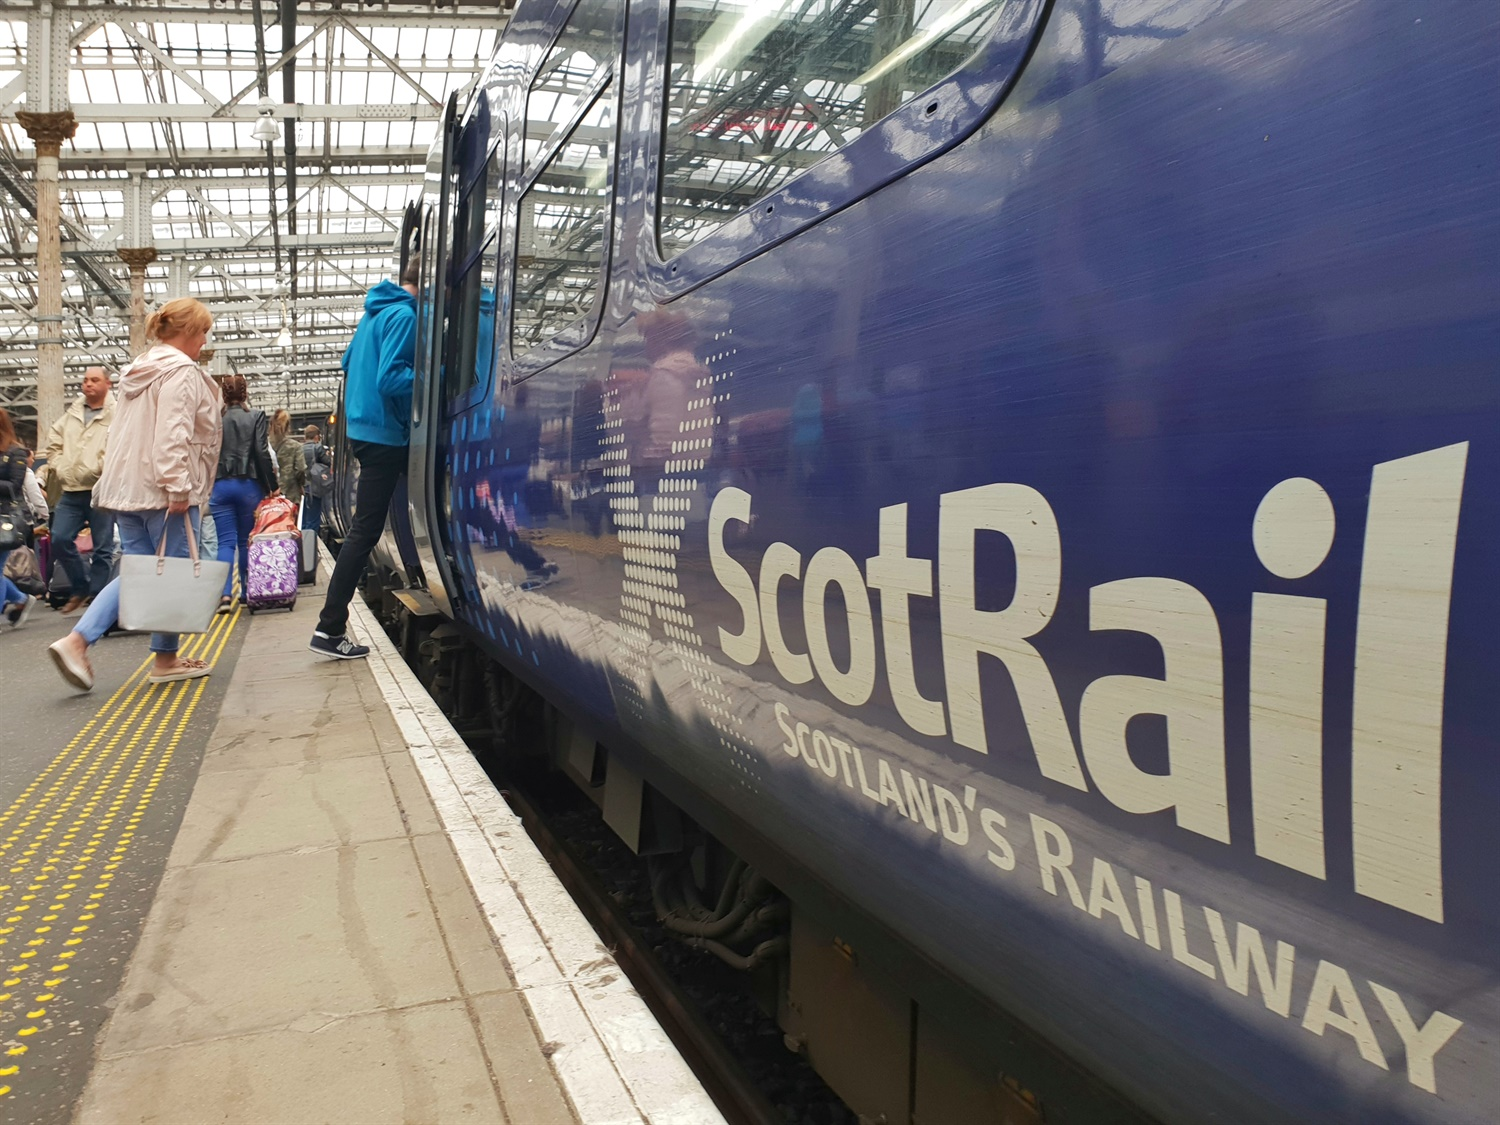 ScotRail issued second formal warning over performance in two months by Scottish Government